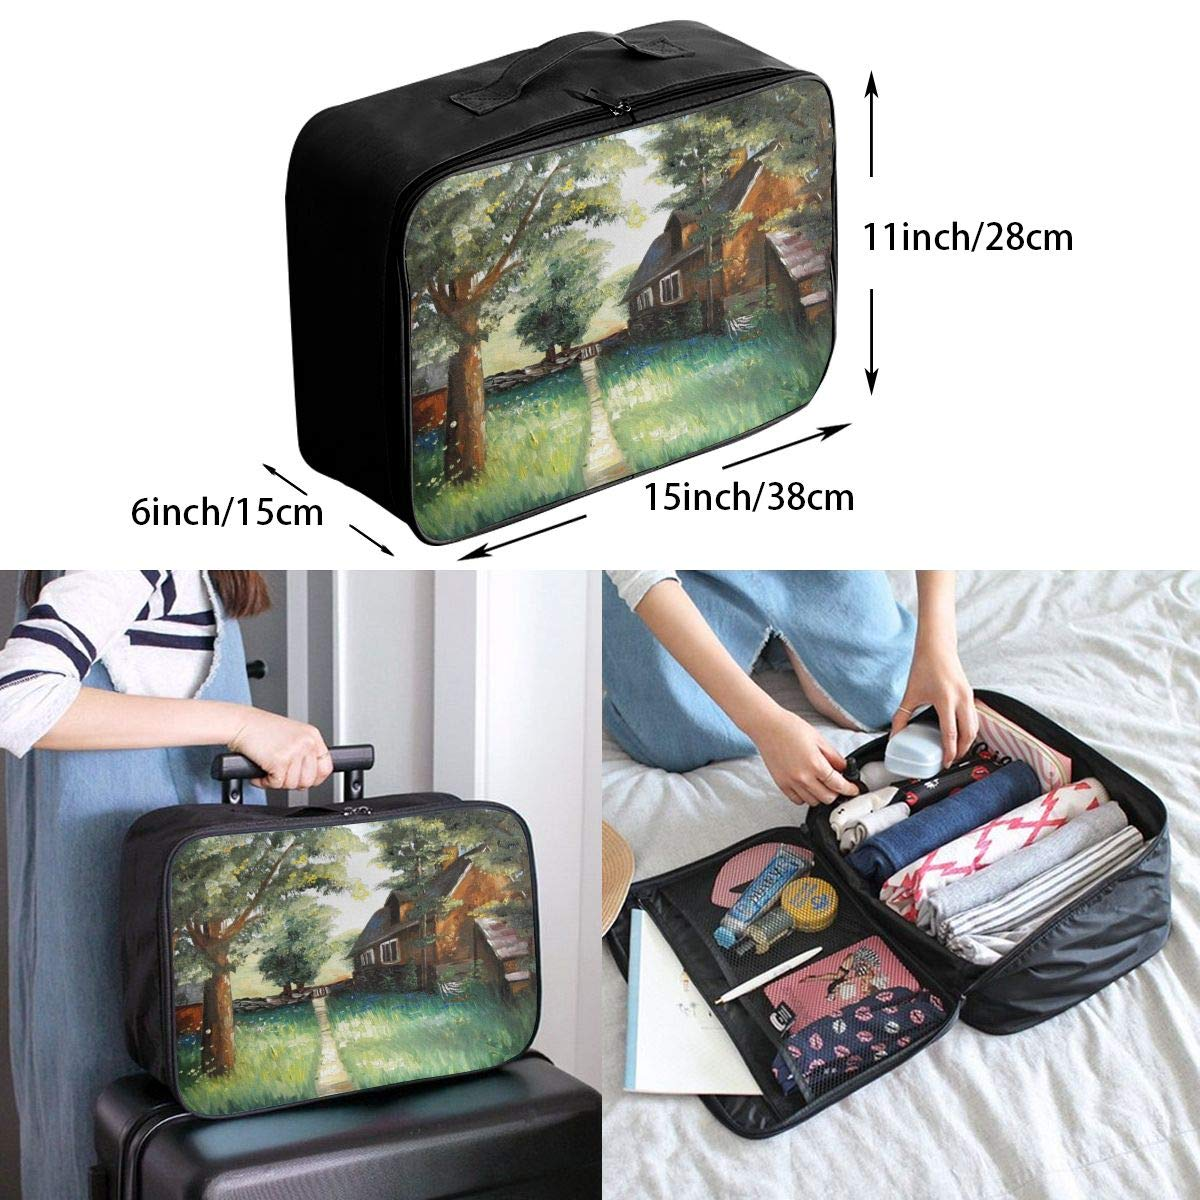 Travel Luggage Duffle Bag Lightweight Portable Handbag Forest House Painting Large Capacity Waterproof Foldable Storage Tote